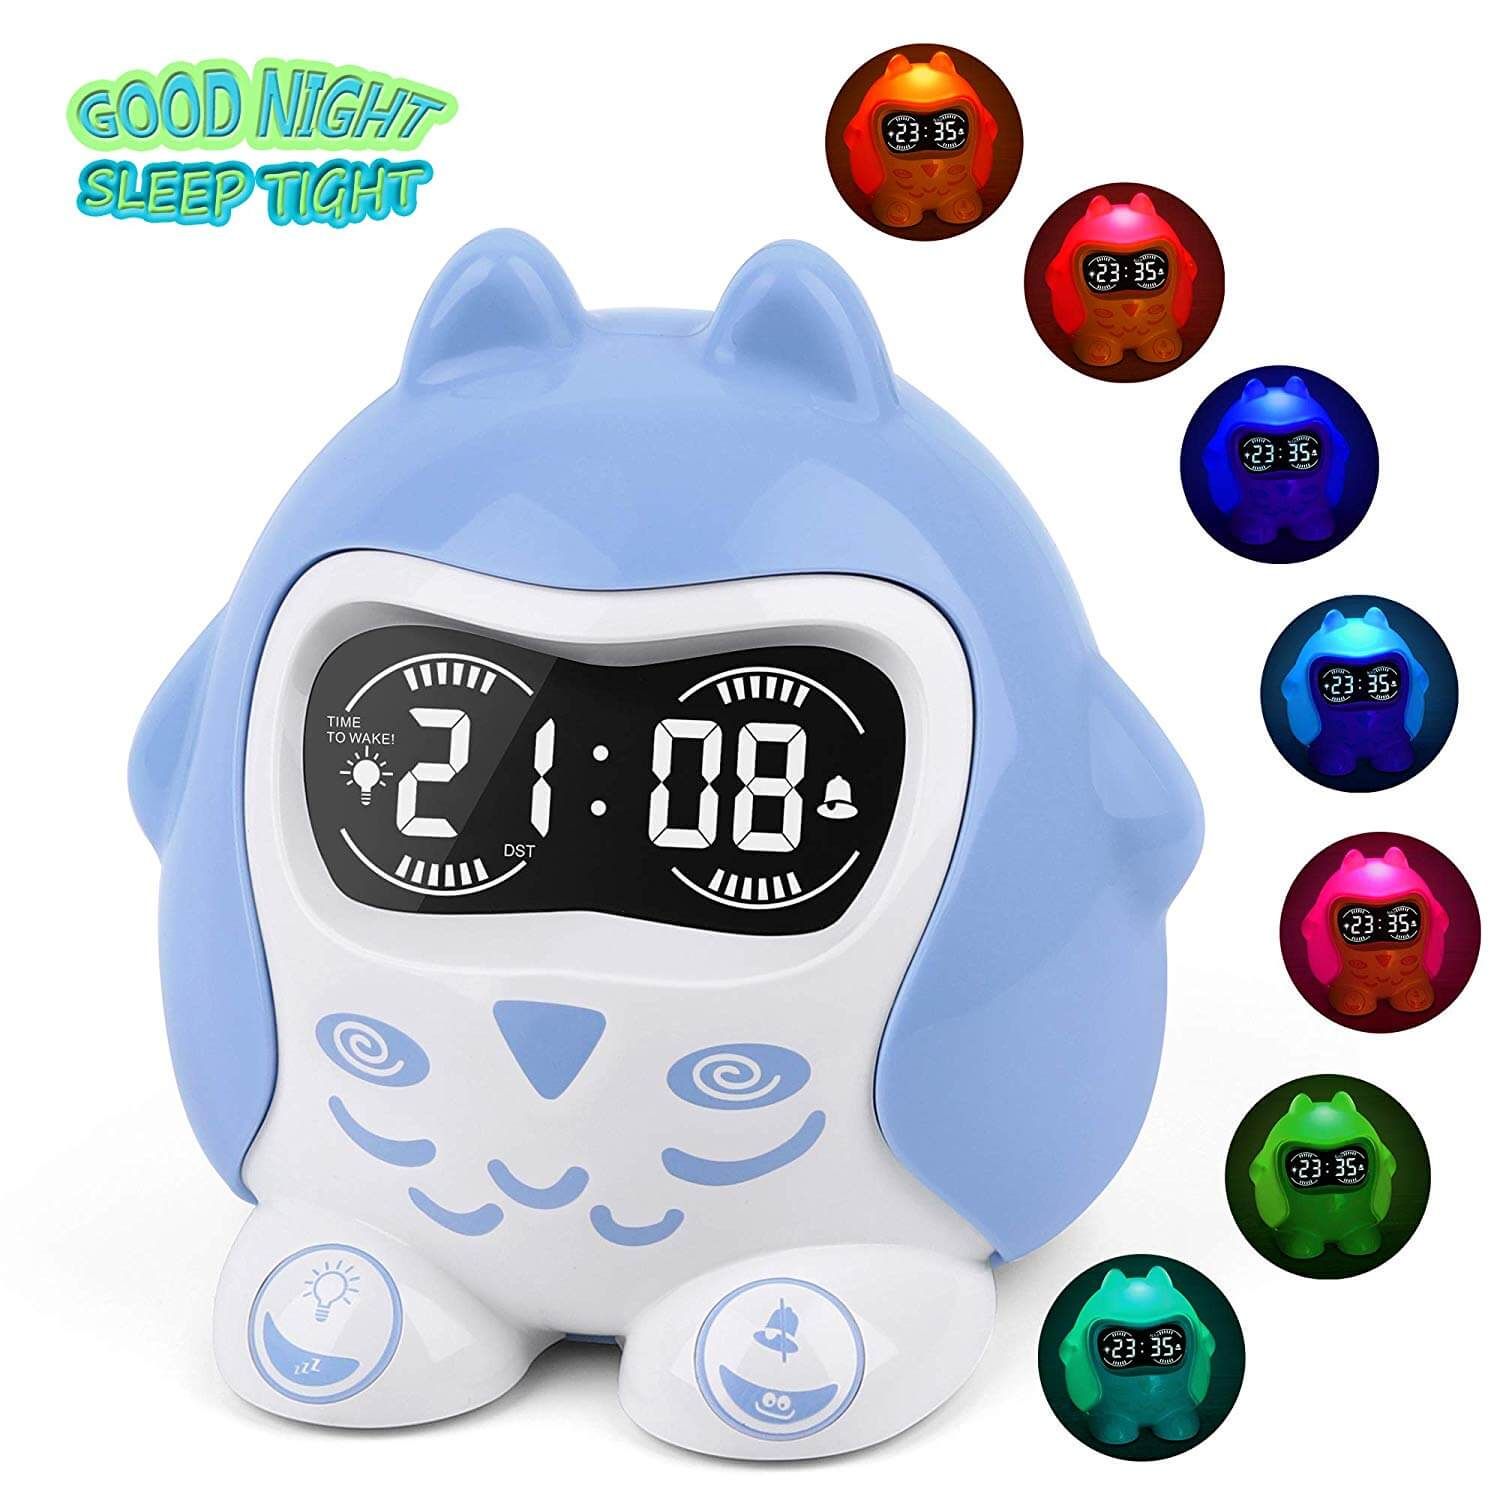 Mesqool Avian Kids' Alarm Clock and Sound Soother